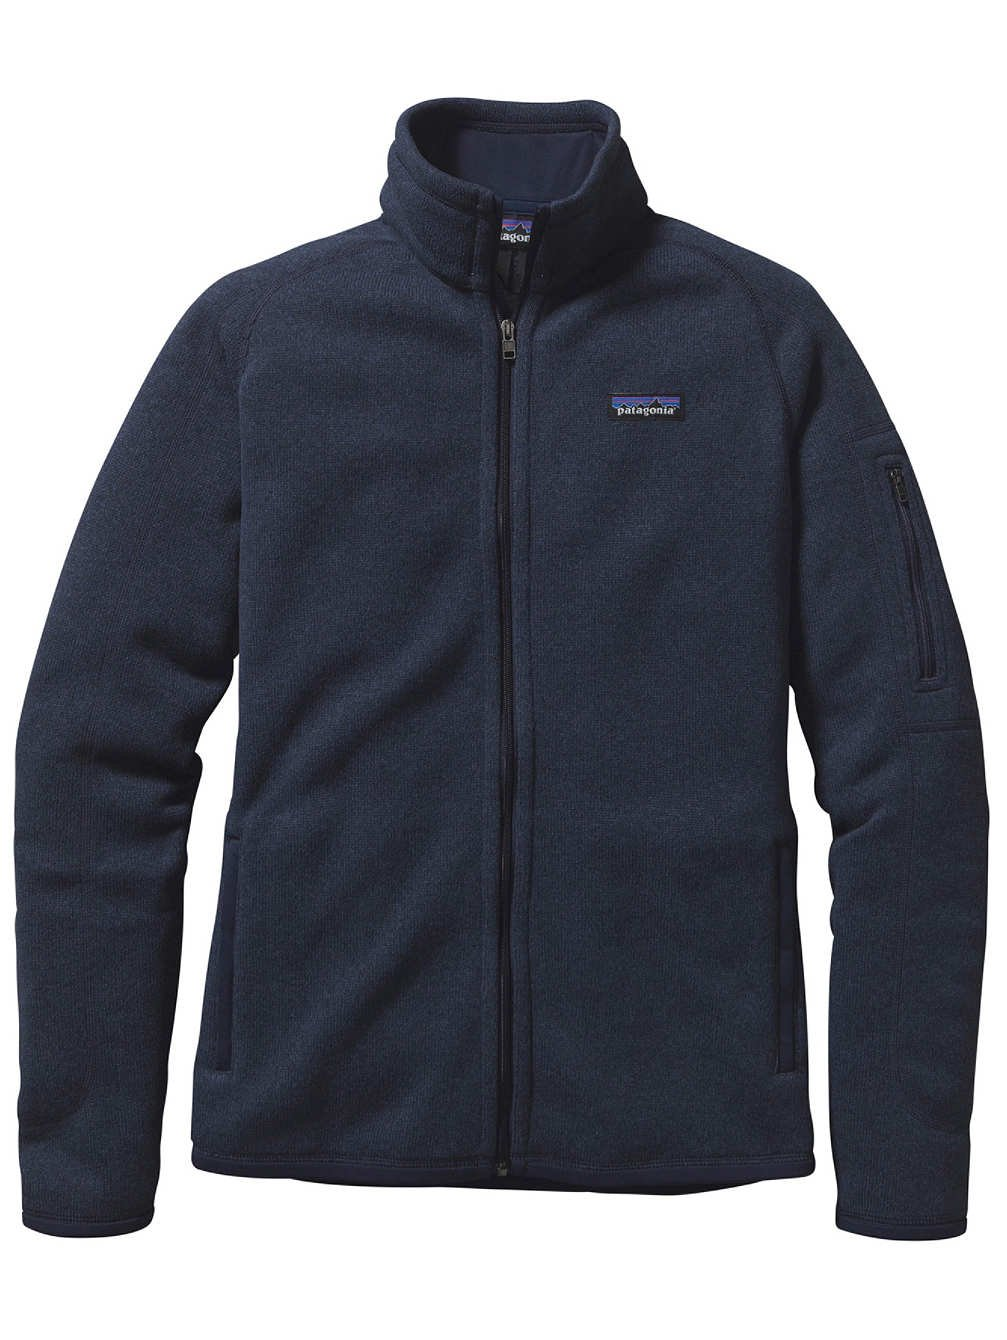 Patagonia Better Sweater Jacket Womens Style: 25542-CNY Size: M by Patagonia